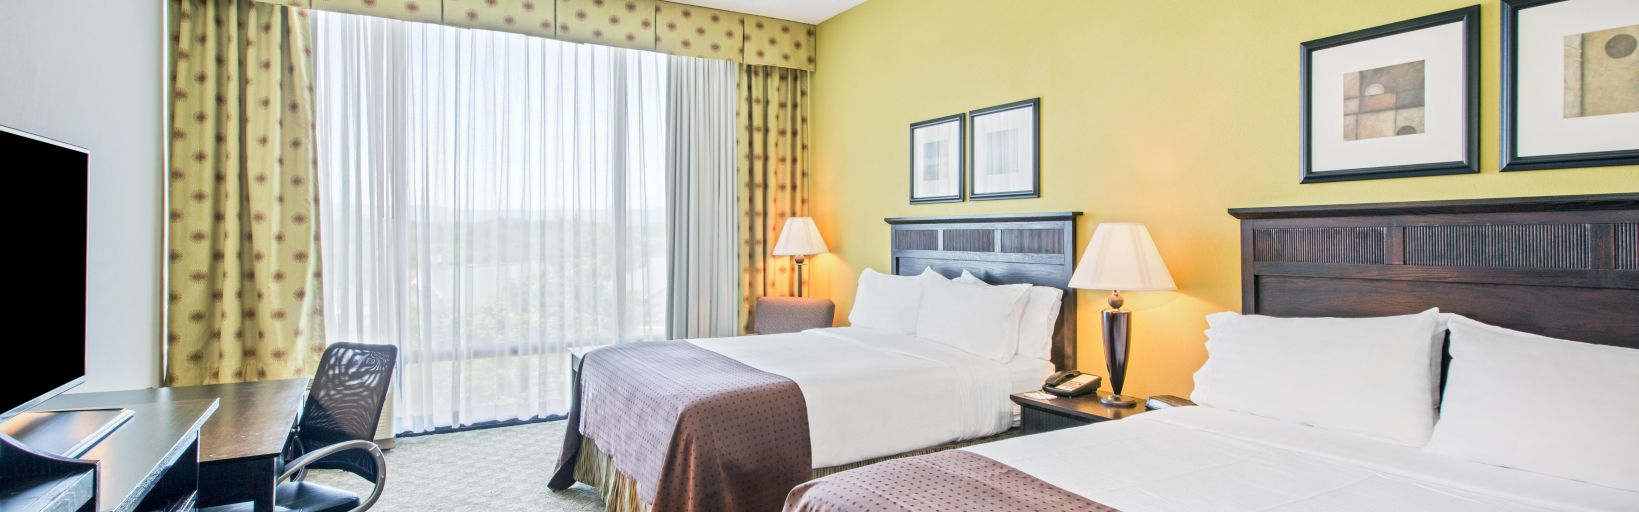 holiday inn roanoke tanglewood rt 419 i581 room pictures amenities